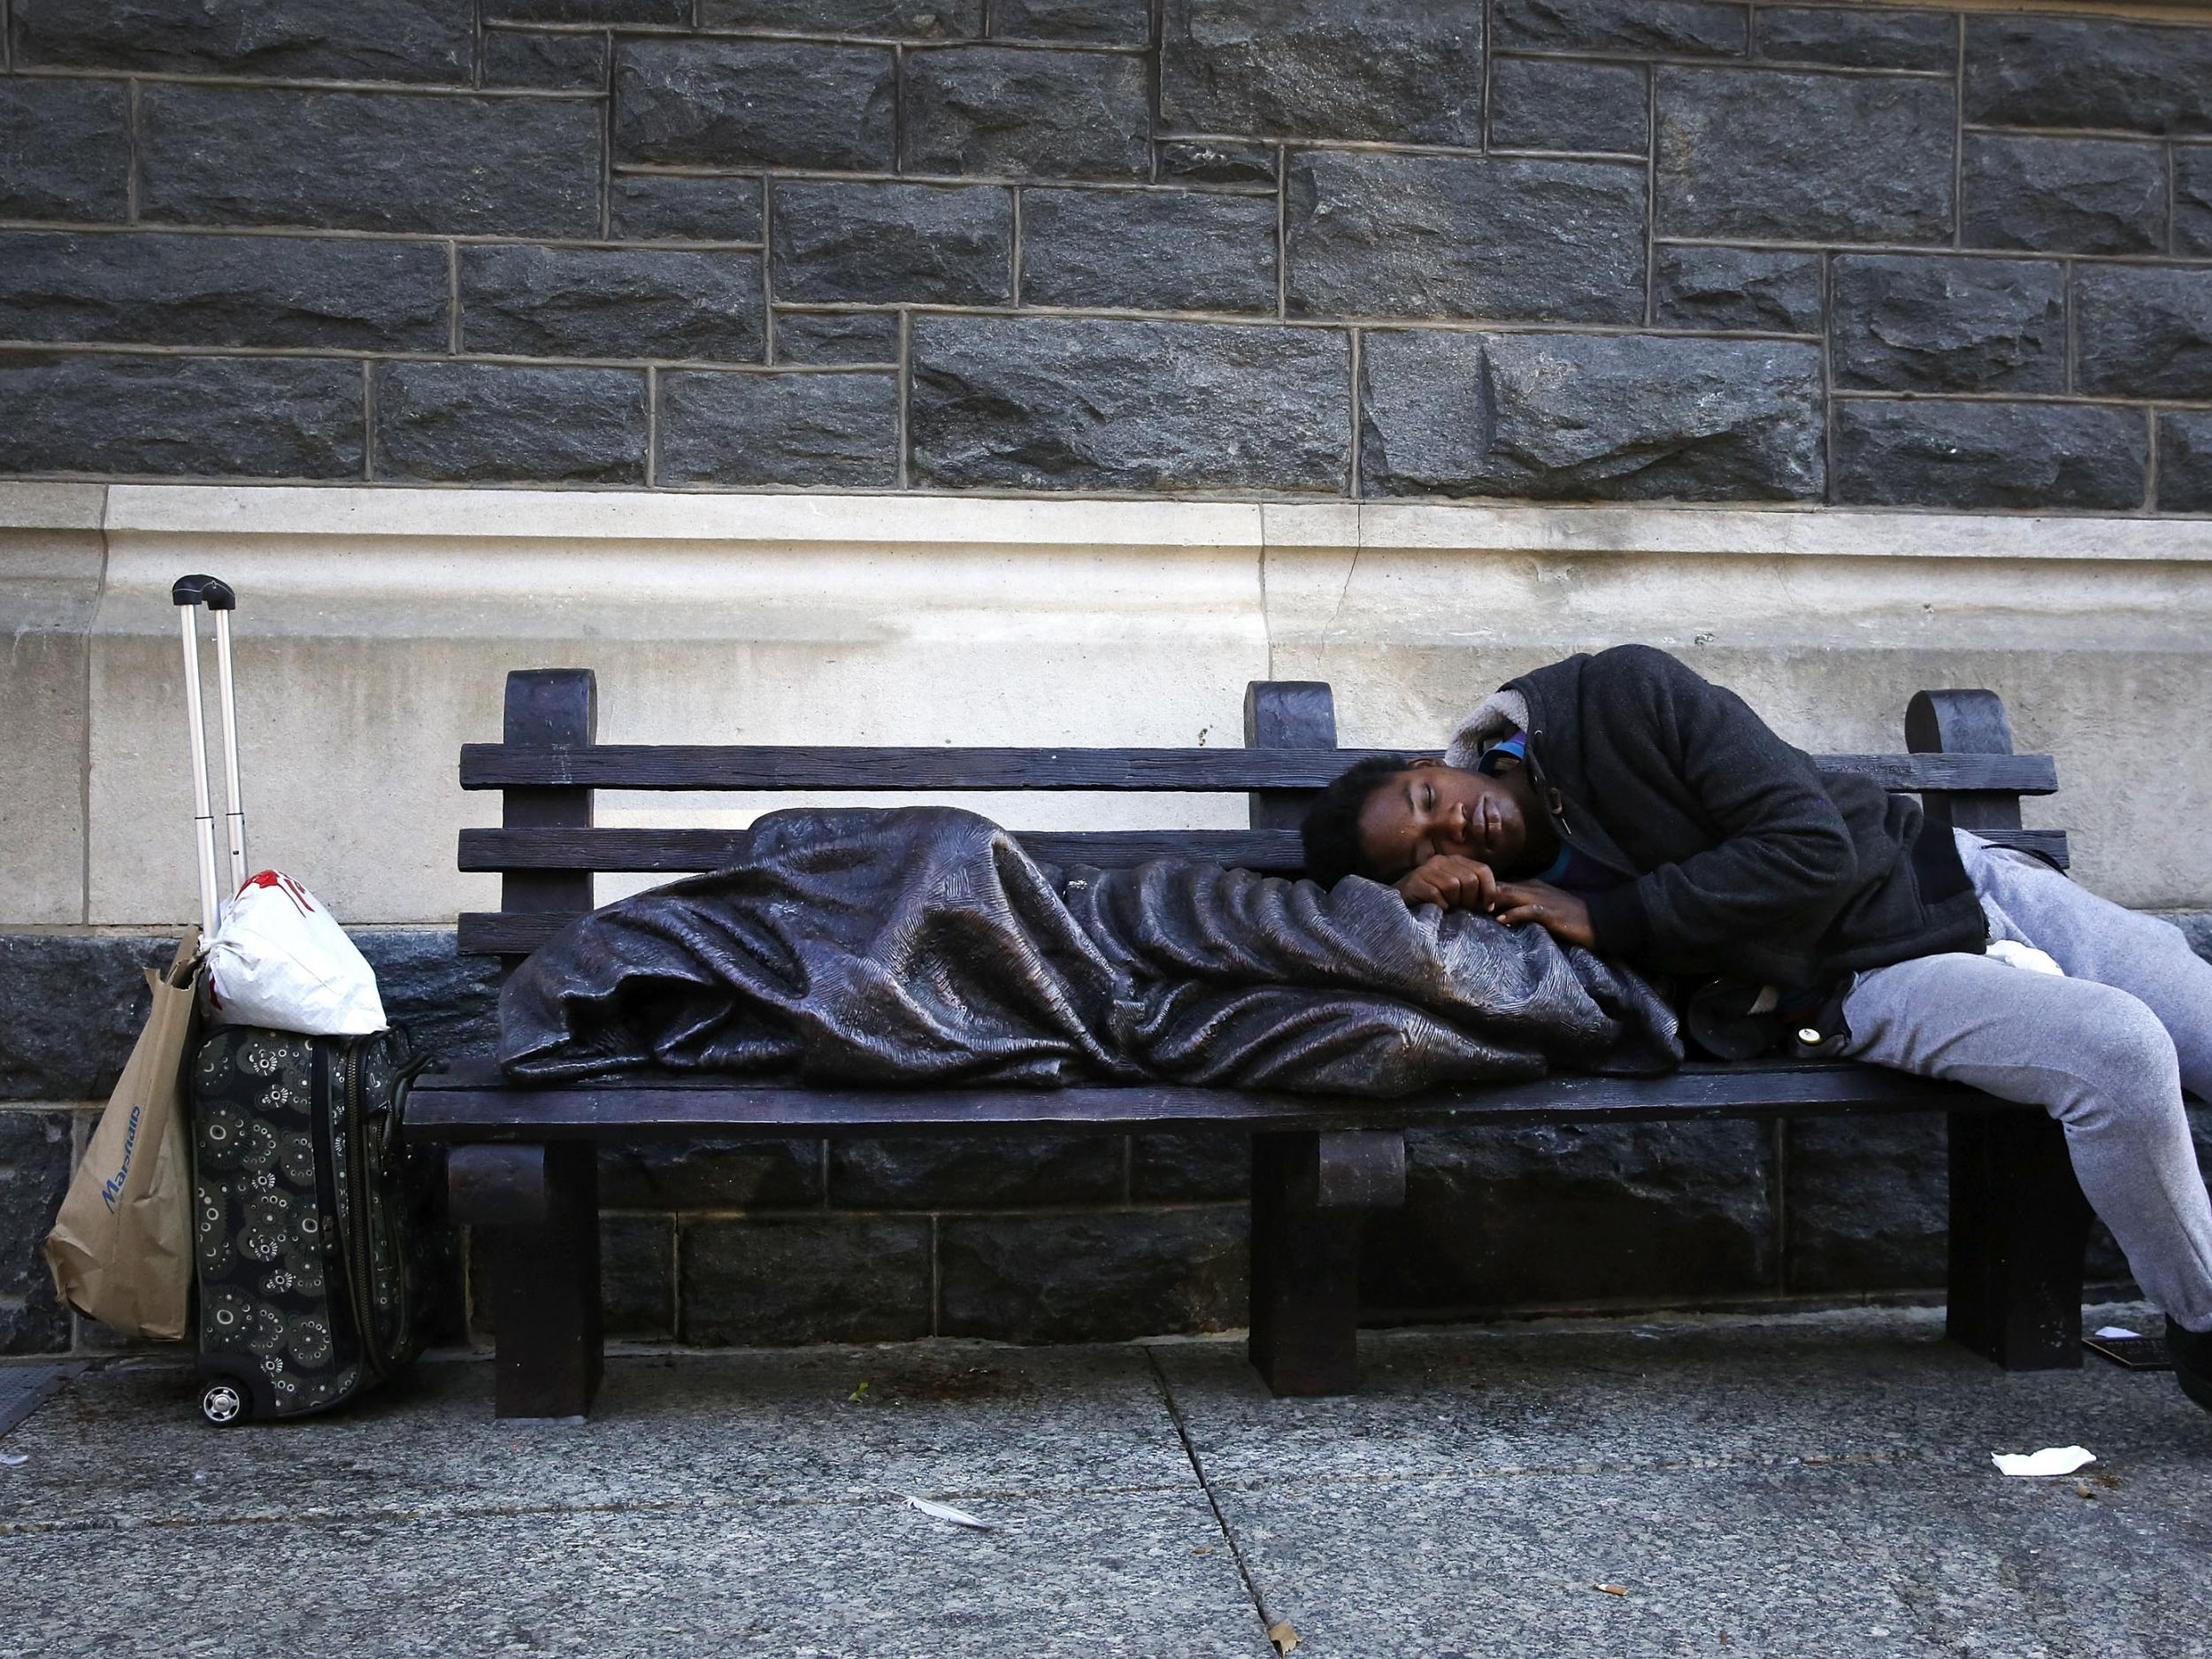 Central London Church Says It Will Fight Westminster Council To Install 39 Homeless Jesus 39 Statue